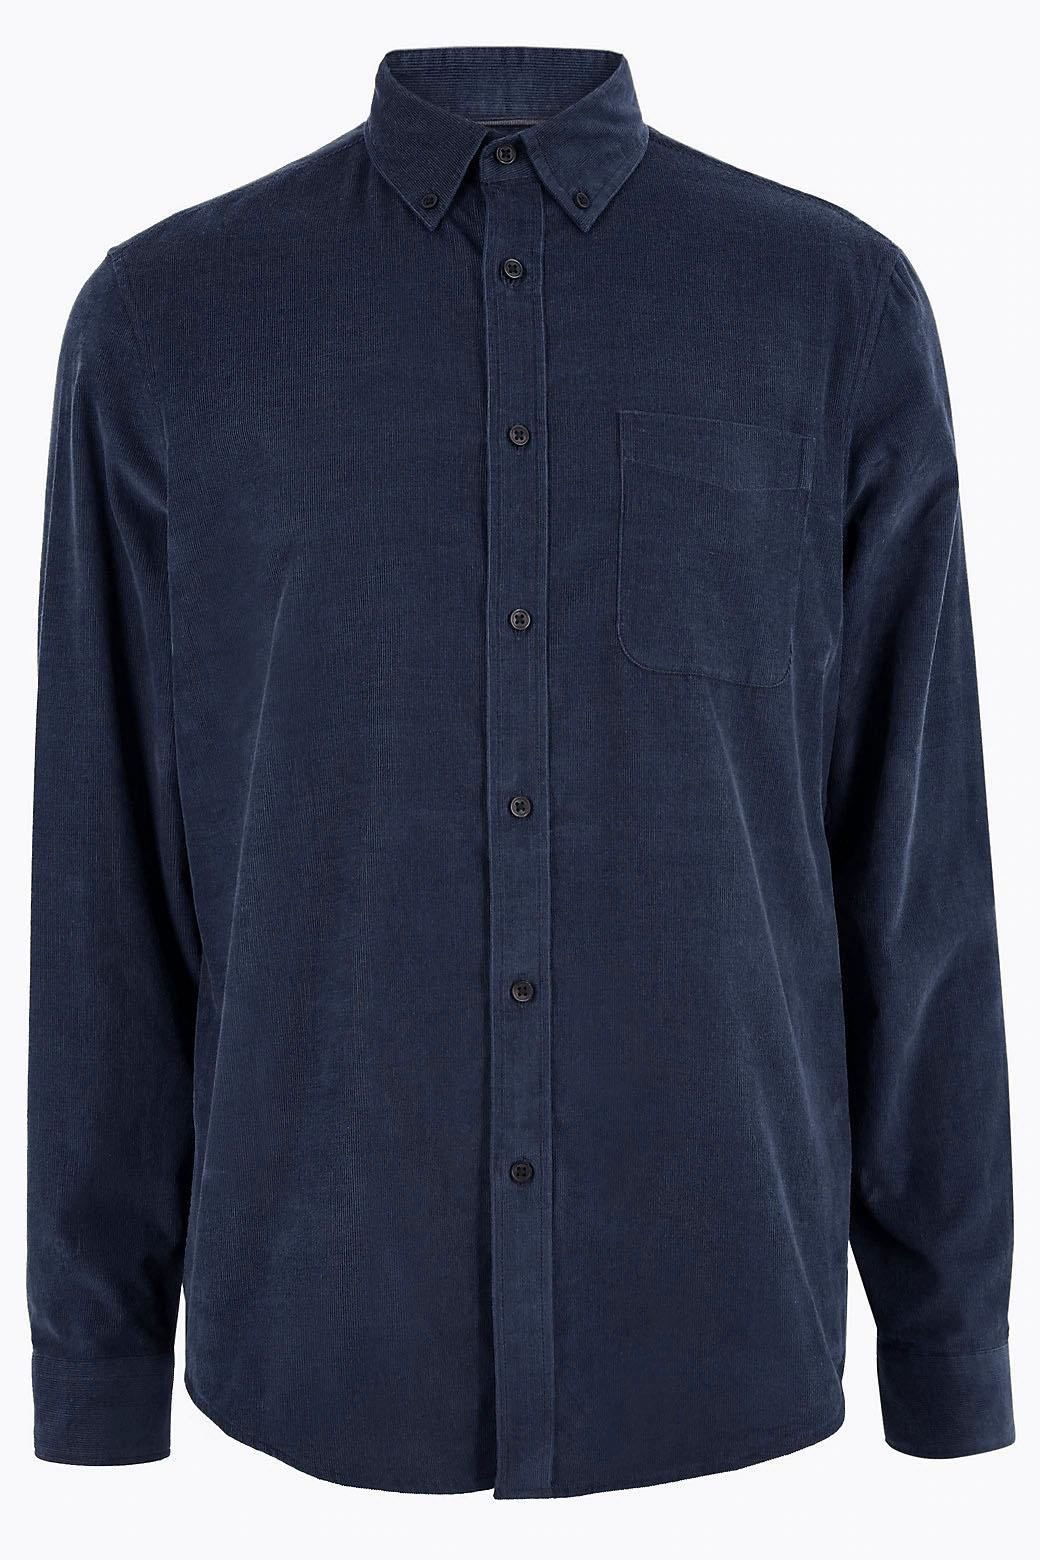 M-amp-S-Marks-and-Spencer-Mens-Fine-Cotton-Corduroy-Needlecord-Shirt thumbnail 26